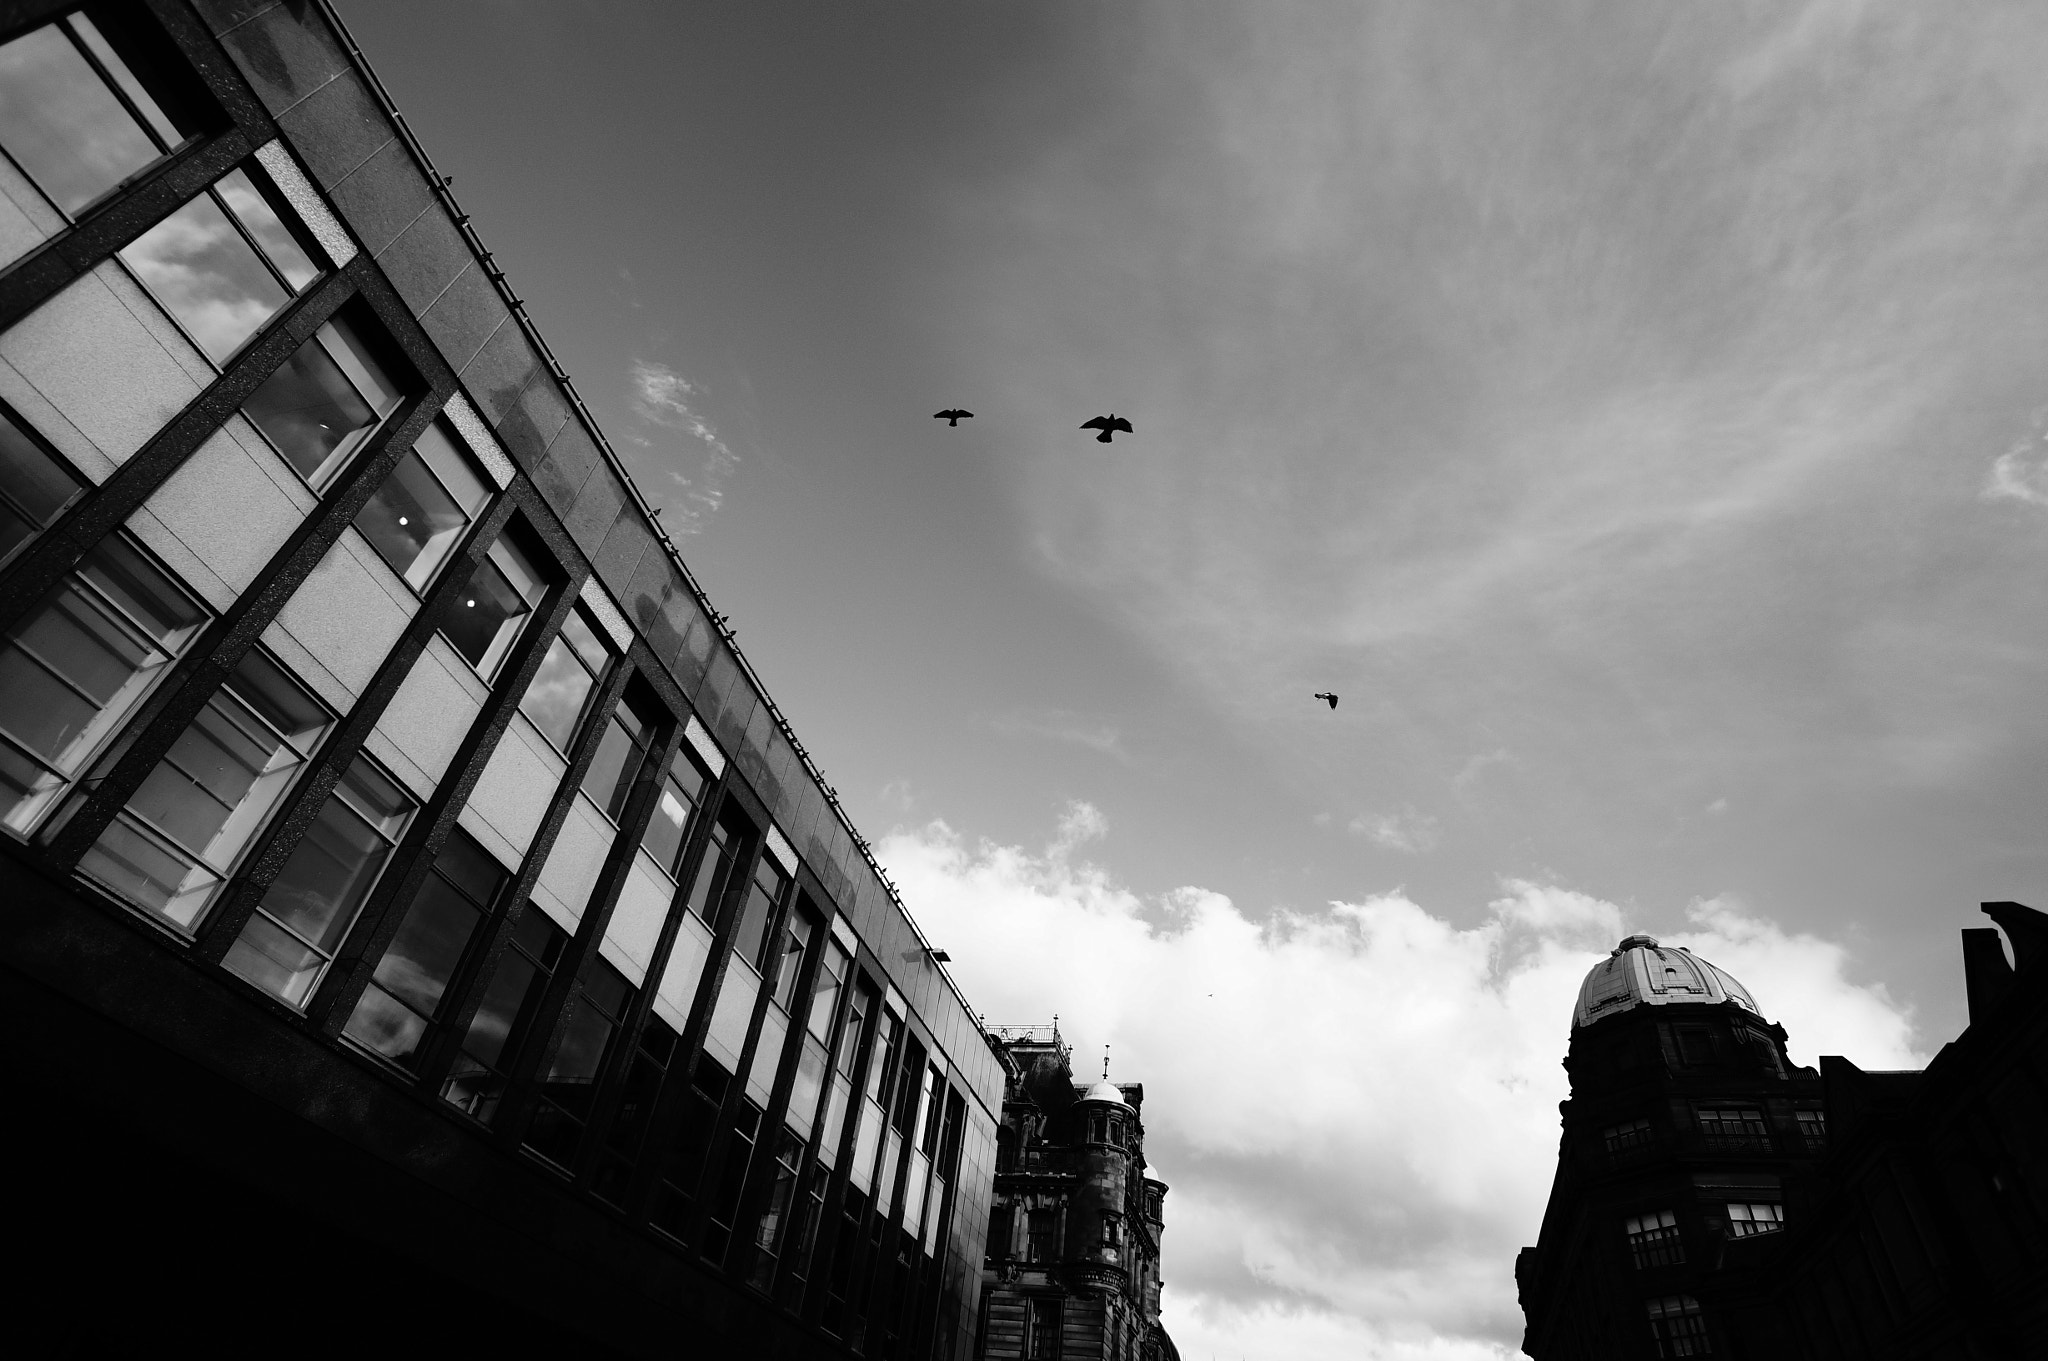 Photograph Glasgow Street by Zhenyu Huang on 500px